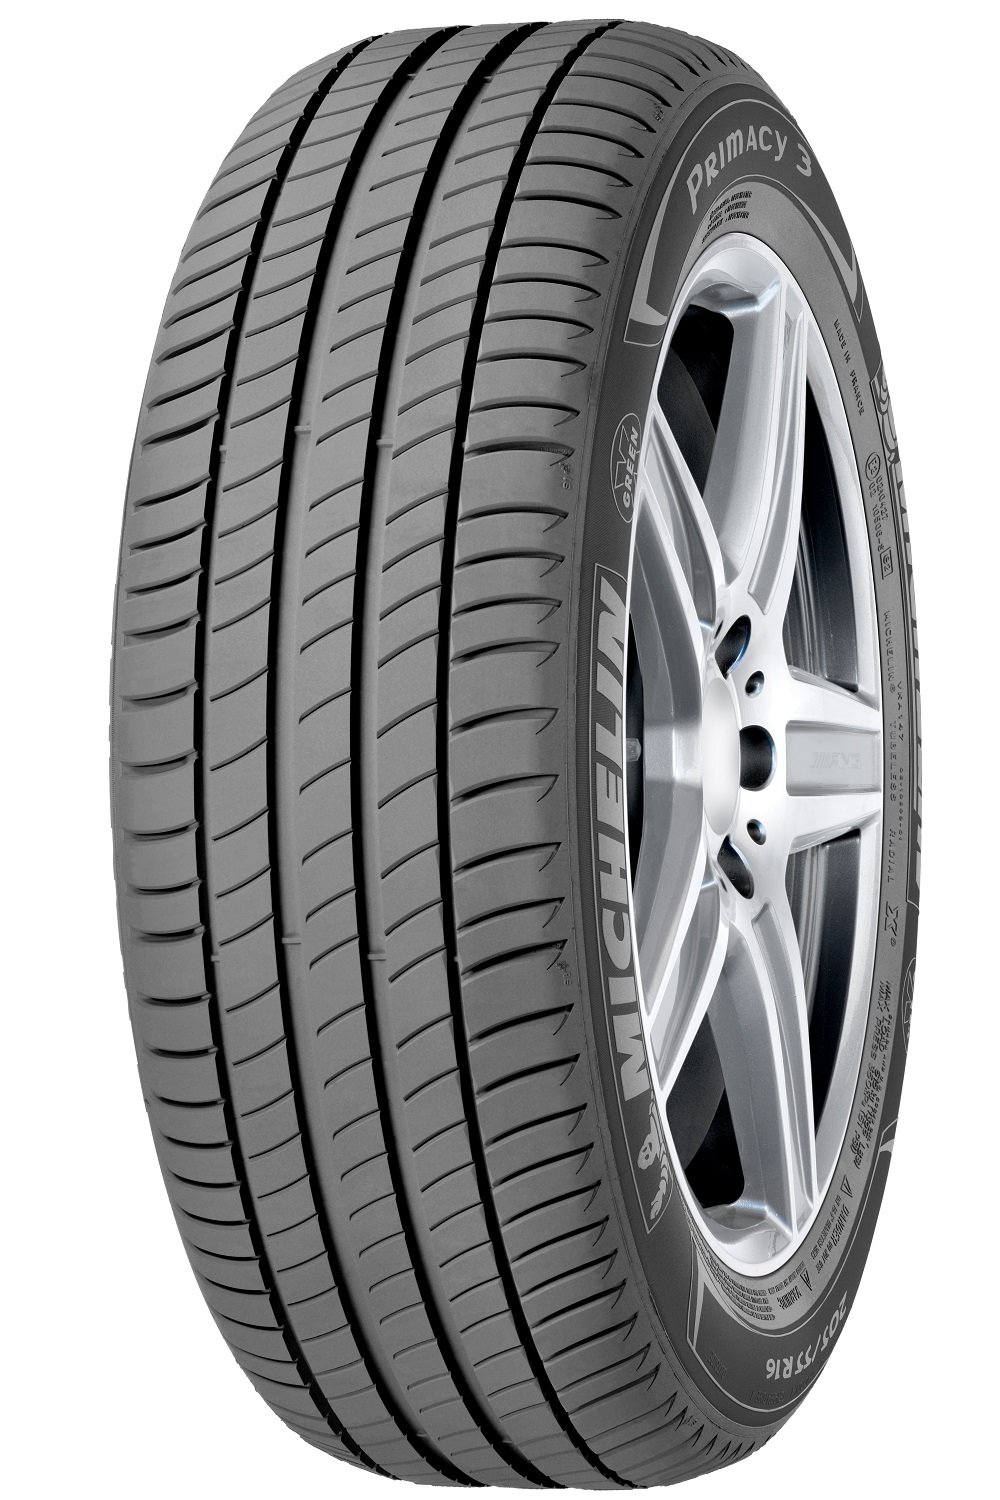 neumatico michelin primacy 3 245 45 17 99 y